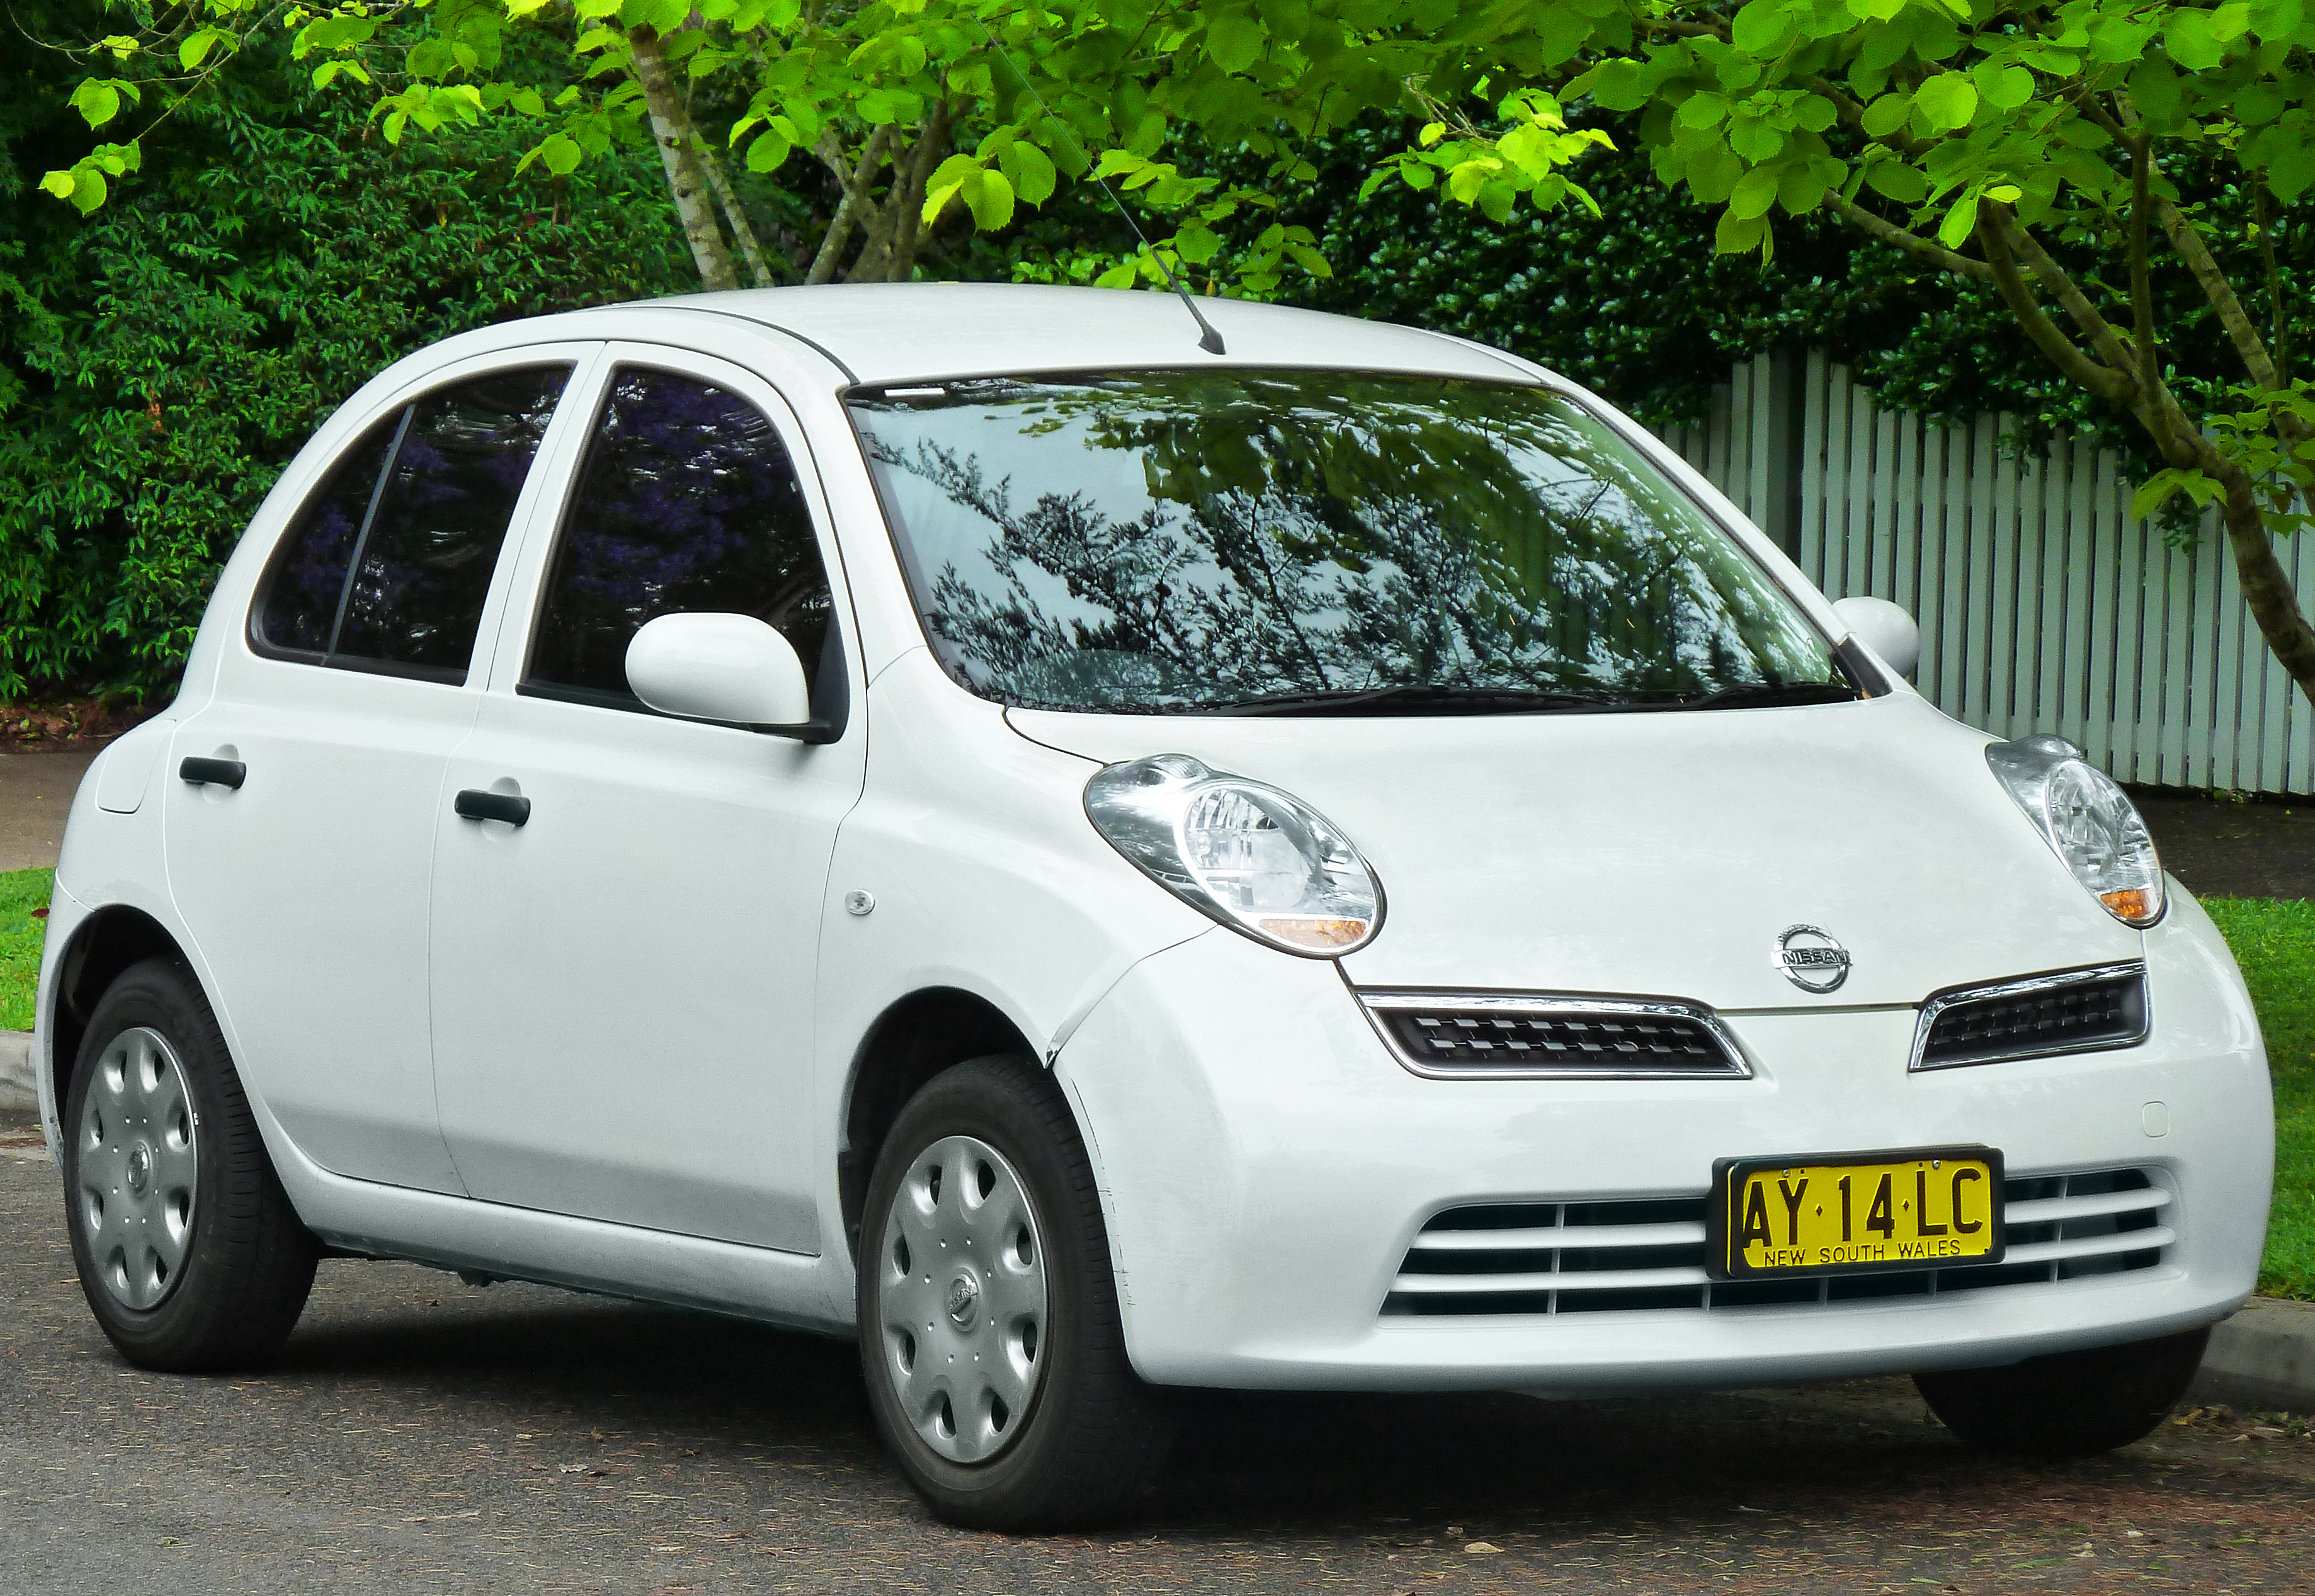 Cars nissan micra coupe cabriolet (k12c) 2011 #2